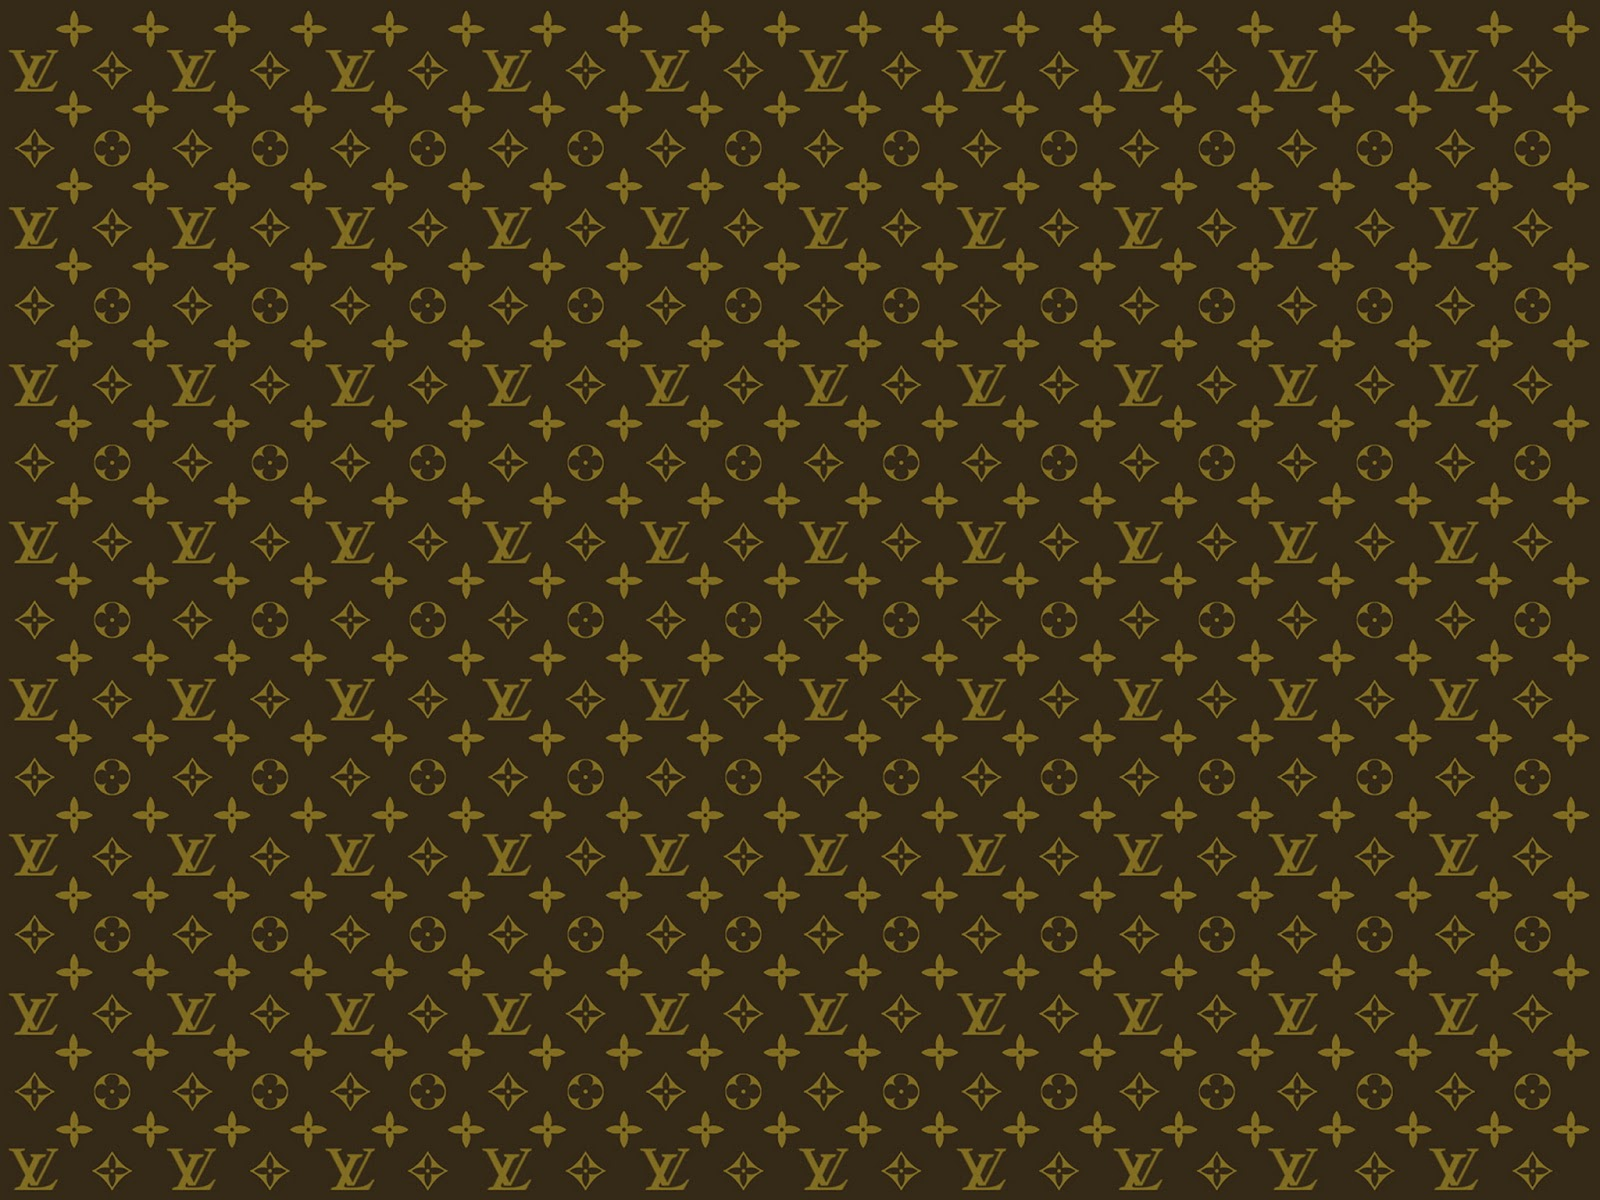 Ipad 2 Wallpaper Hd Dimensions: Louis Vuitton New IPad 3 Wallpapers